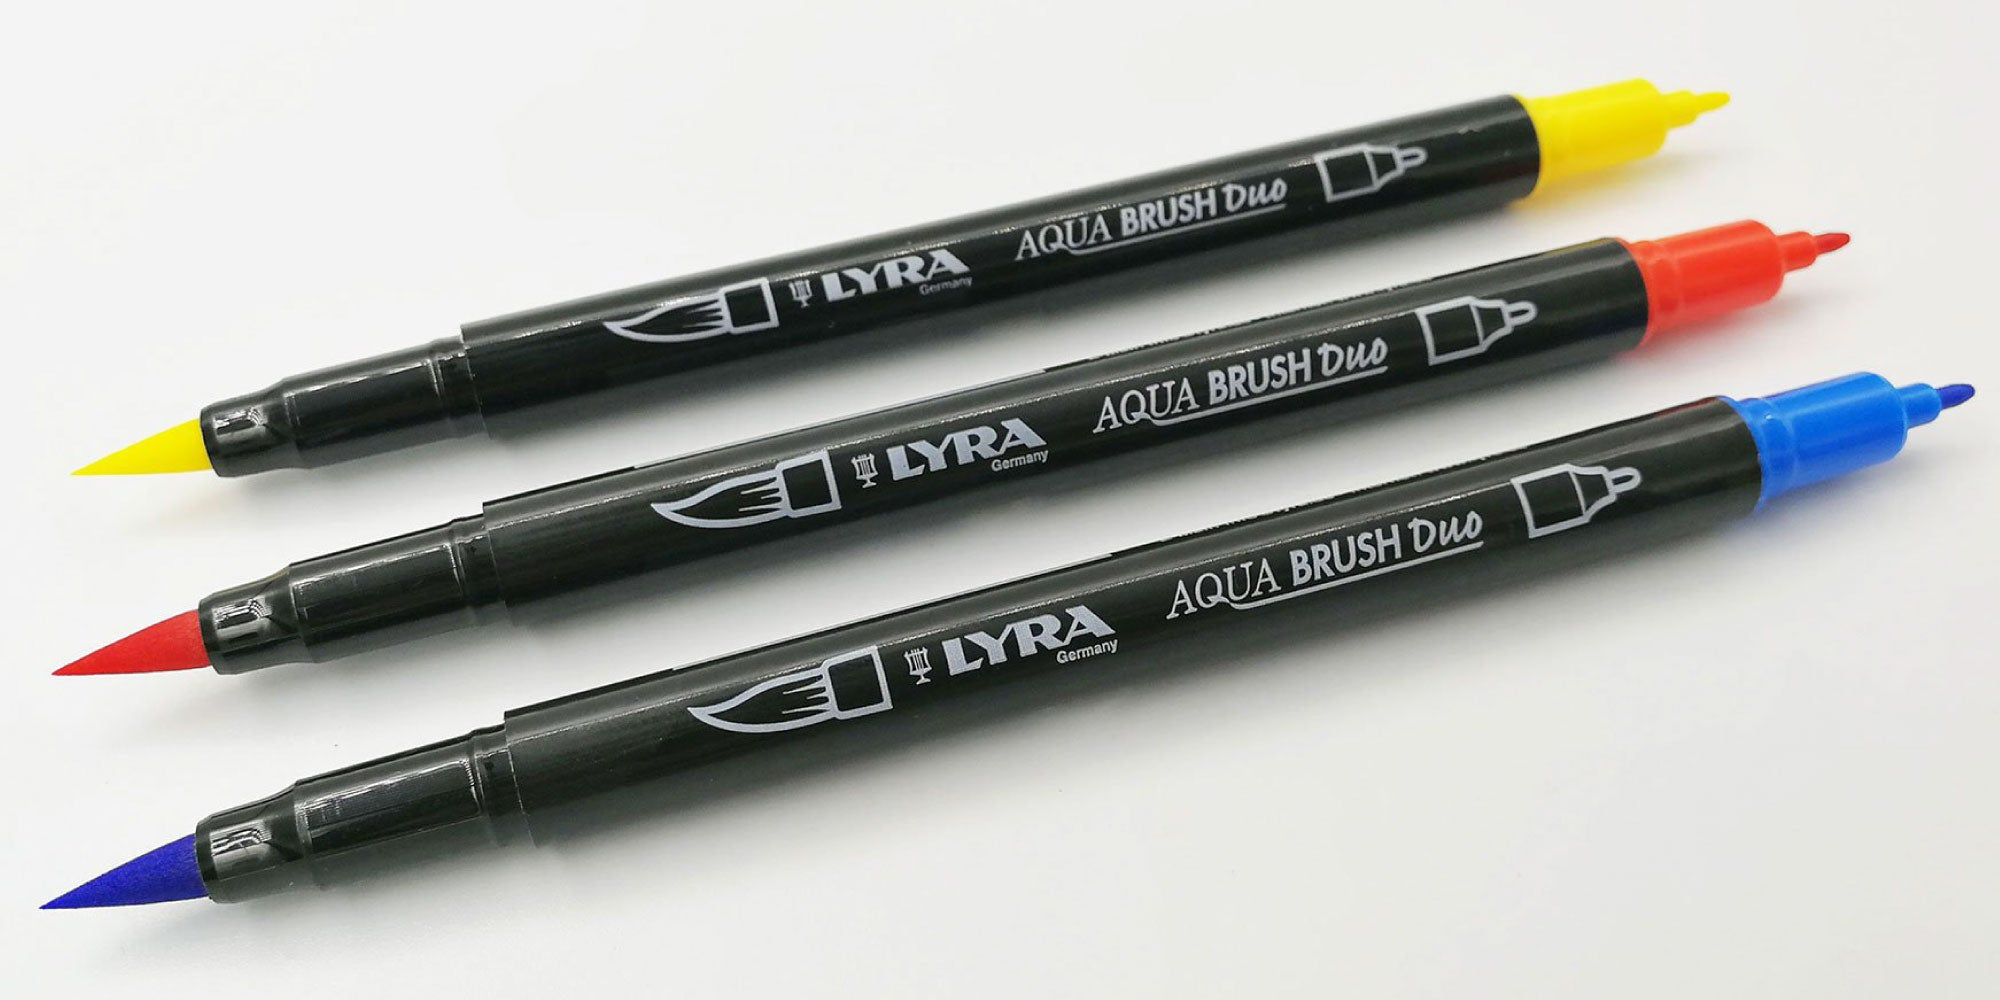 NEW IN: Individual Lyra Aqua Brush Duo pens.